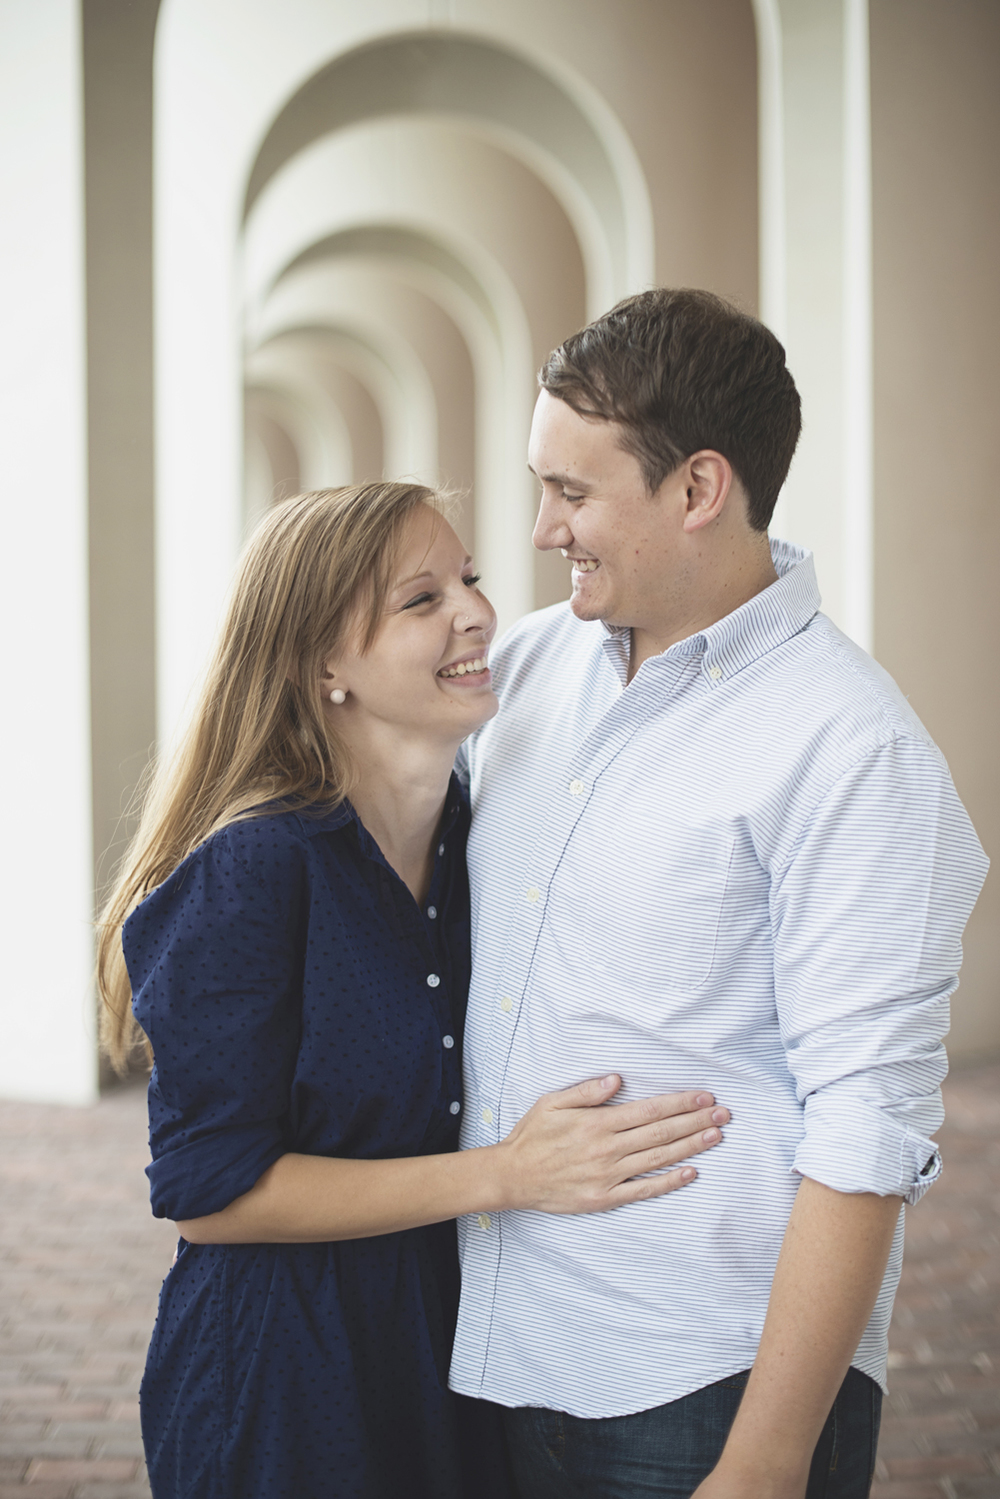 Christopher Newport Couples Photos | Newport News, Virginia | Blue, tan, and white couples outfit ideas